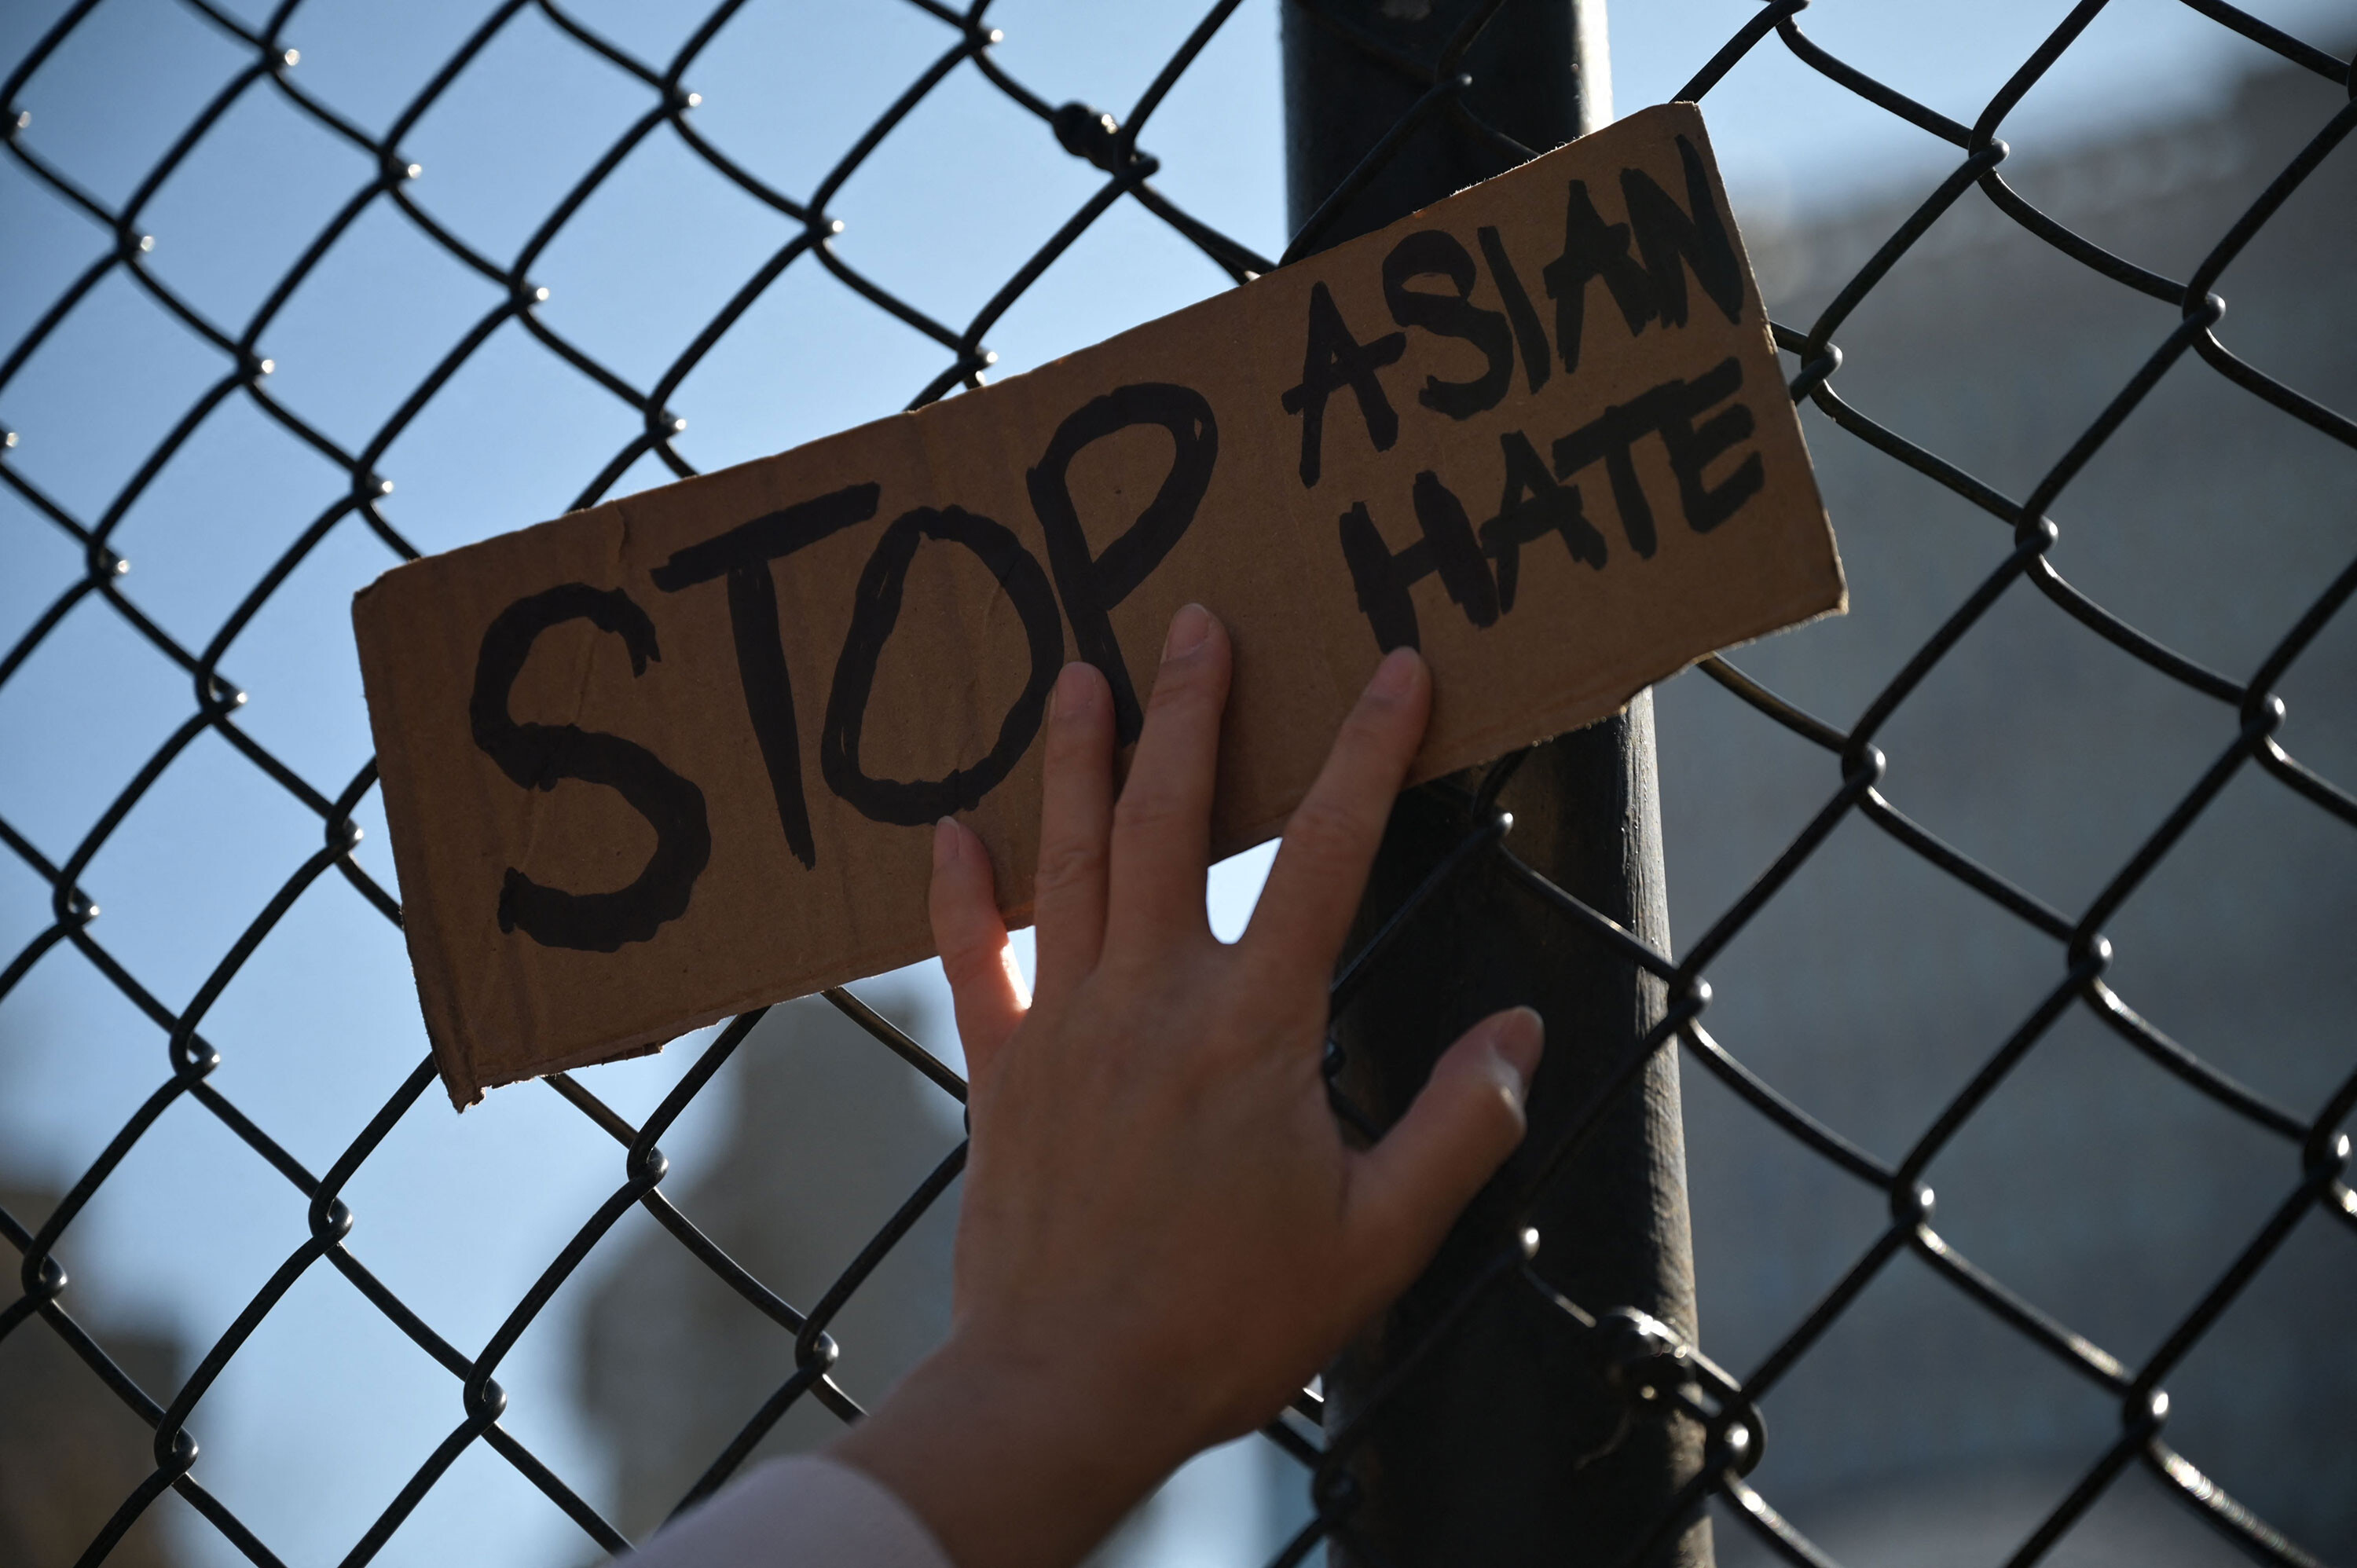 Asian American leaders fear Covid-19 origin report could fuel more bigotry and violence